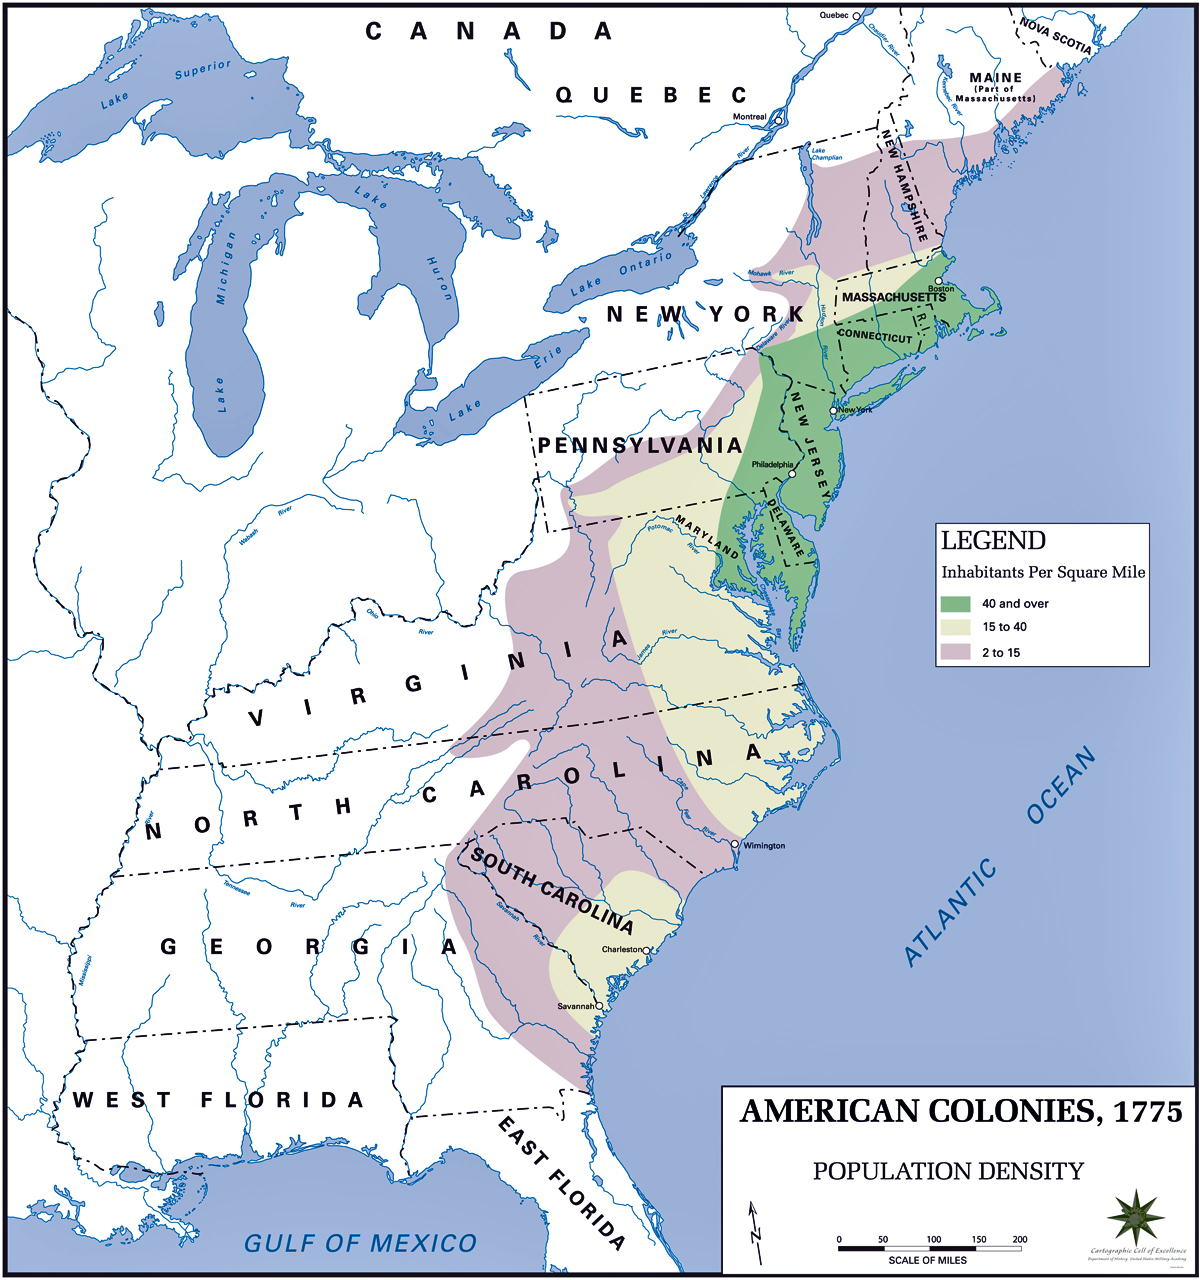 american colonization The effects of colonization on the native americans native americans had inherited the land now called america and eventually their lives were destroyed due to european colonization when the europeans arrived and settled, they changed the native american way of life for the worst.